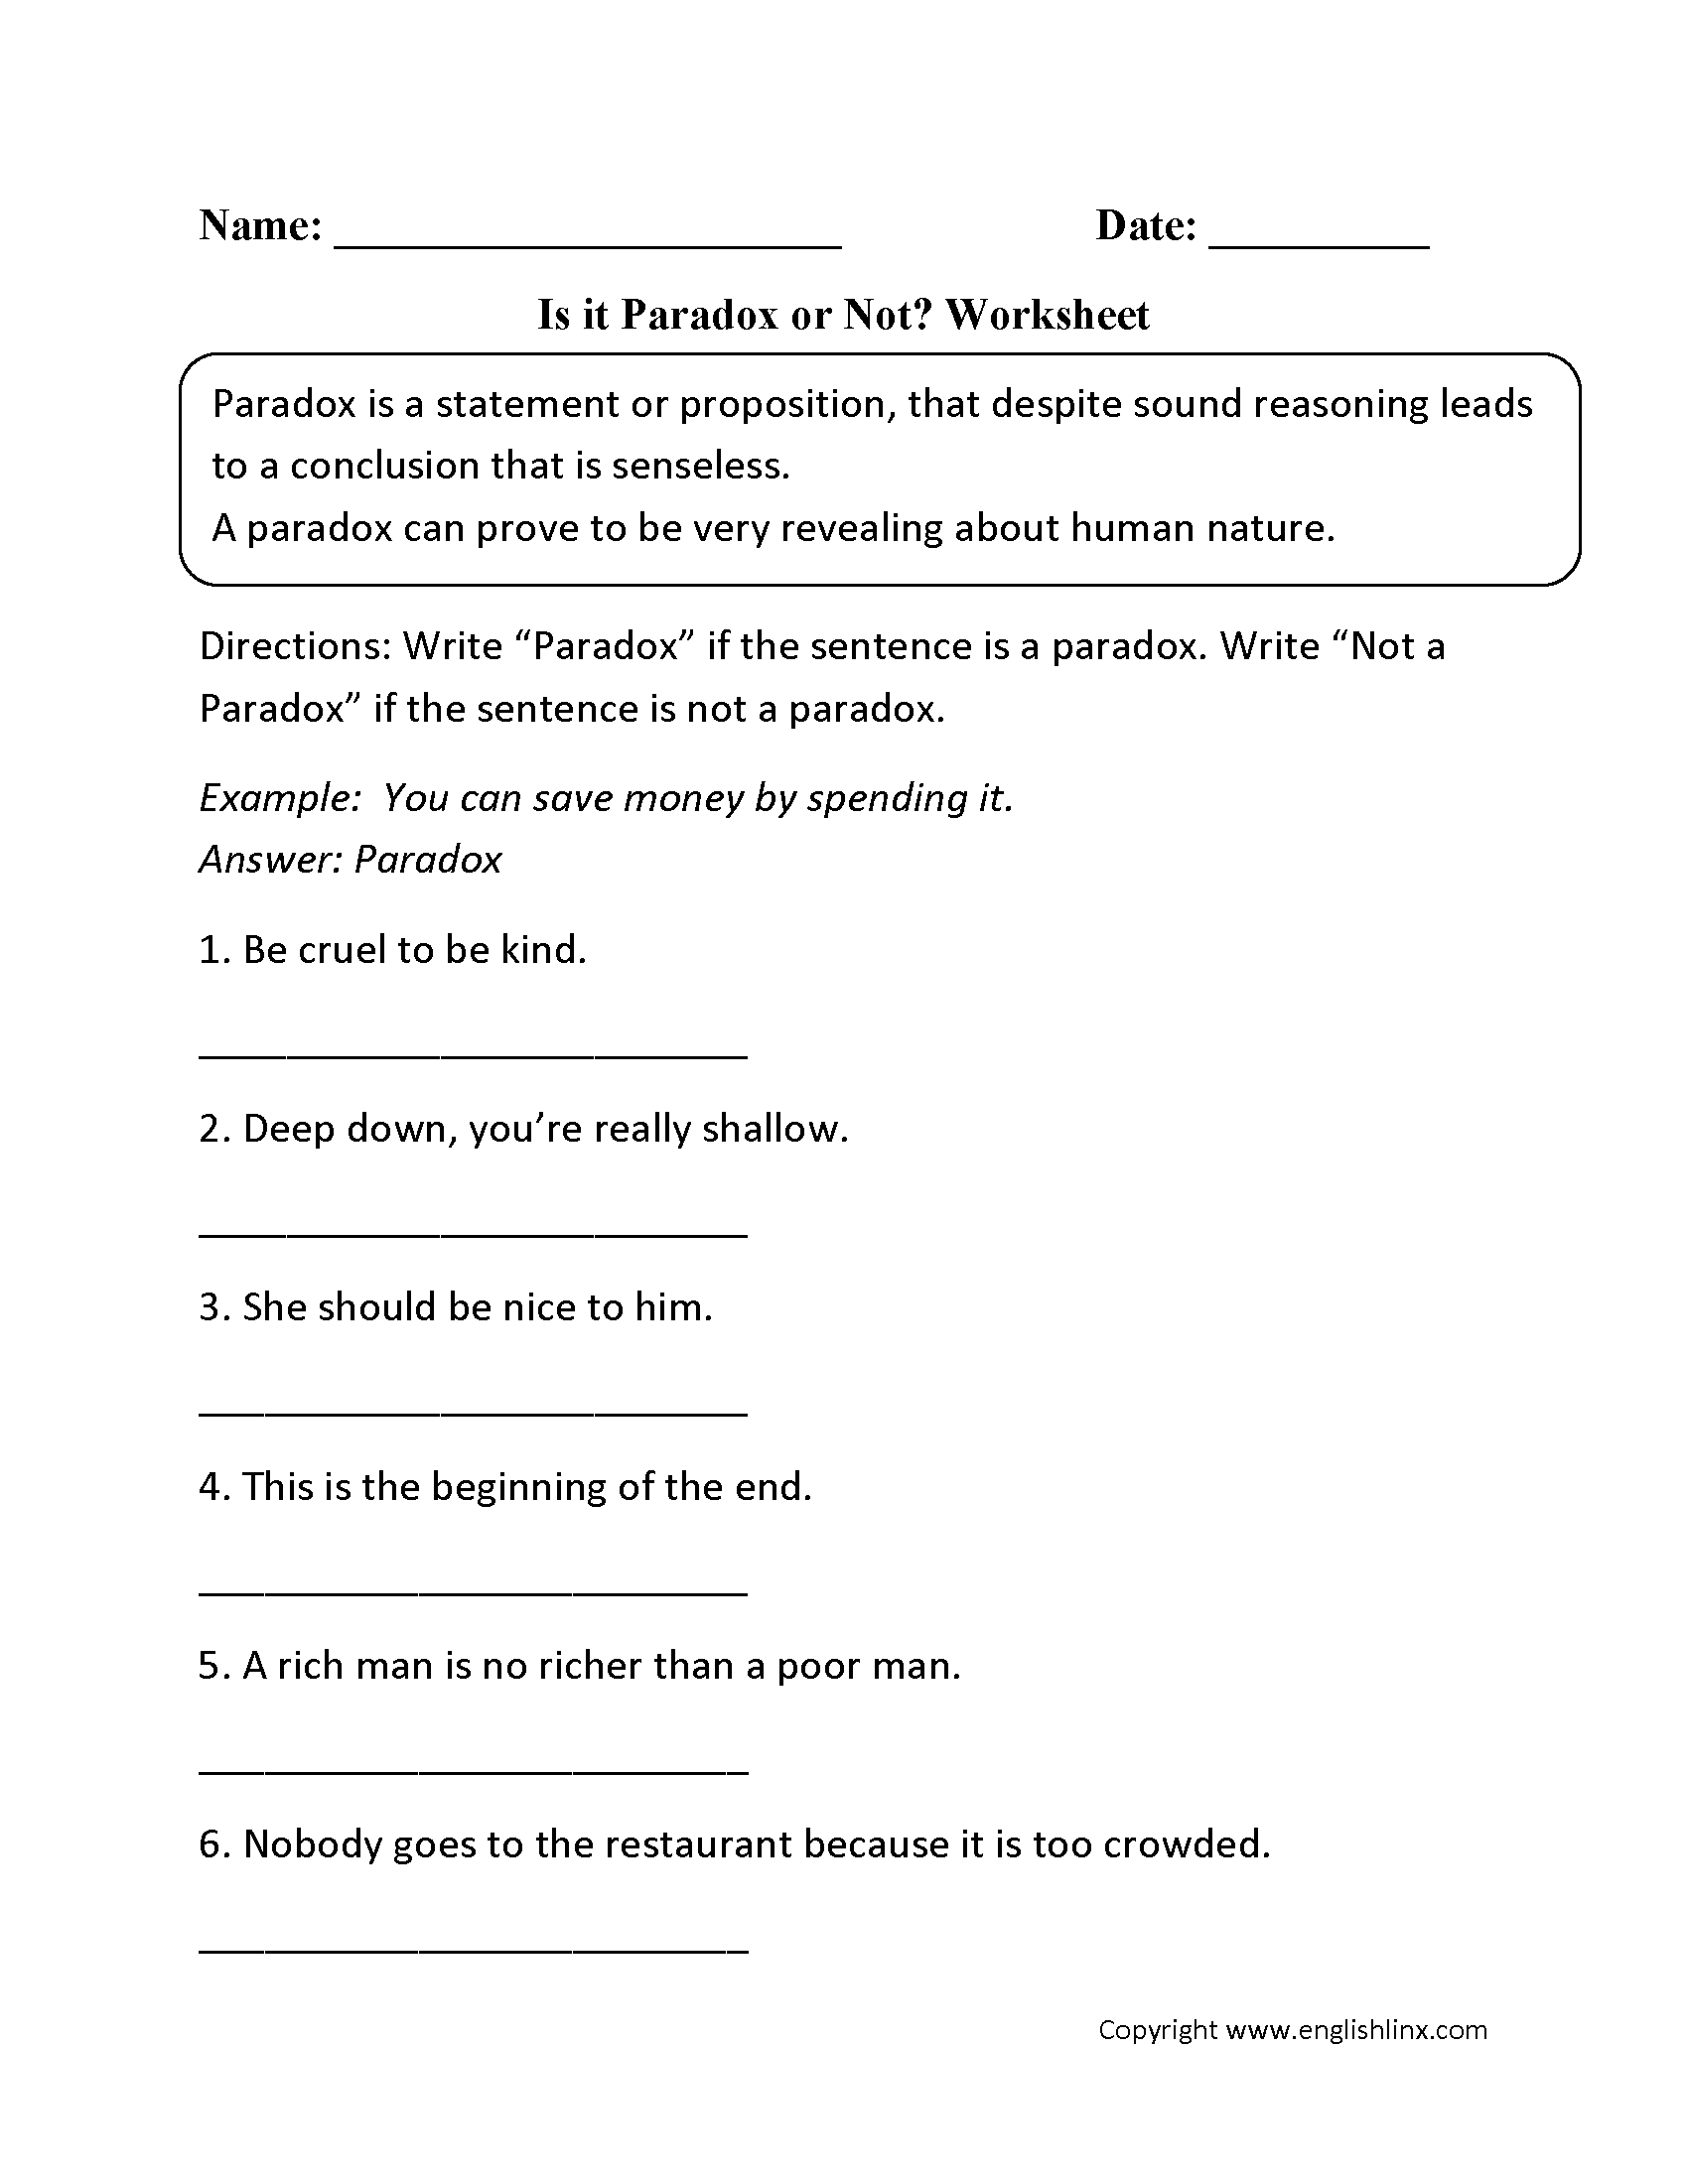 worksheet Allusion Worksheet figurative language worksheets paradox worksheet